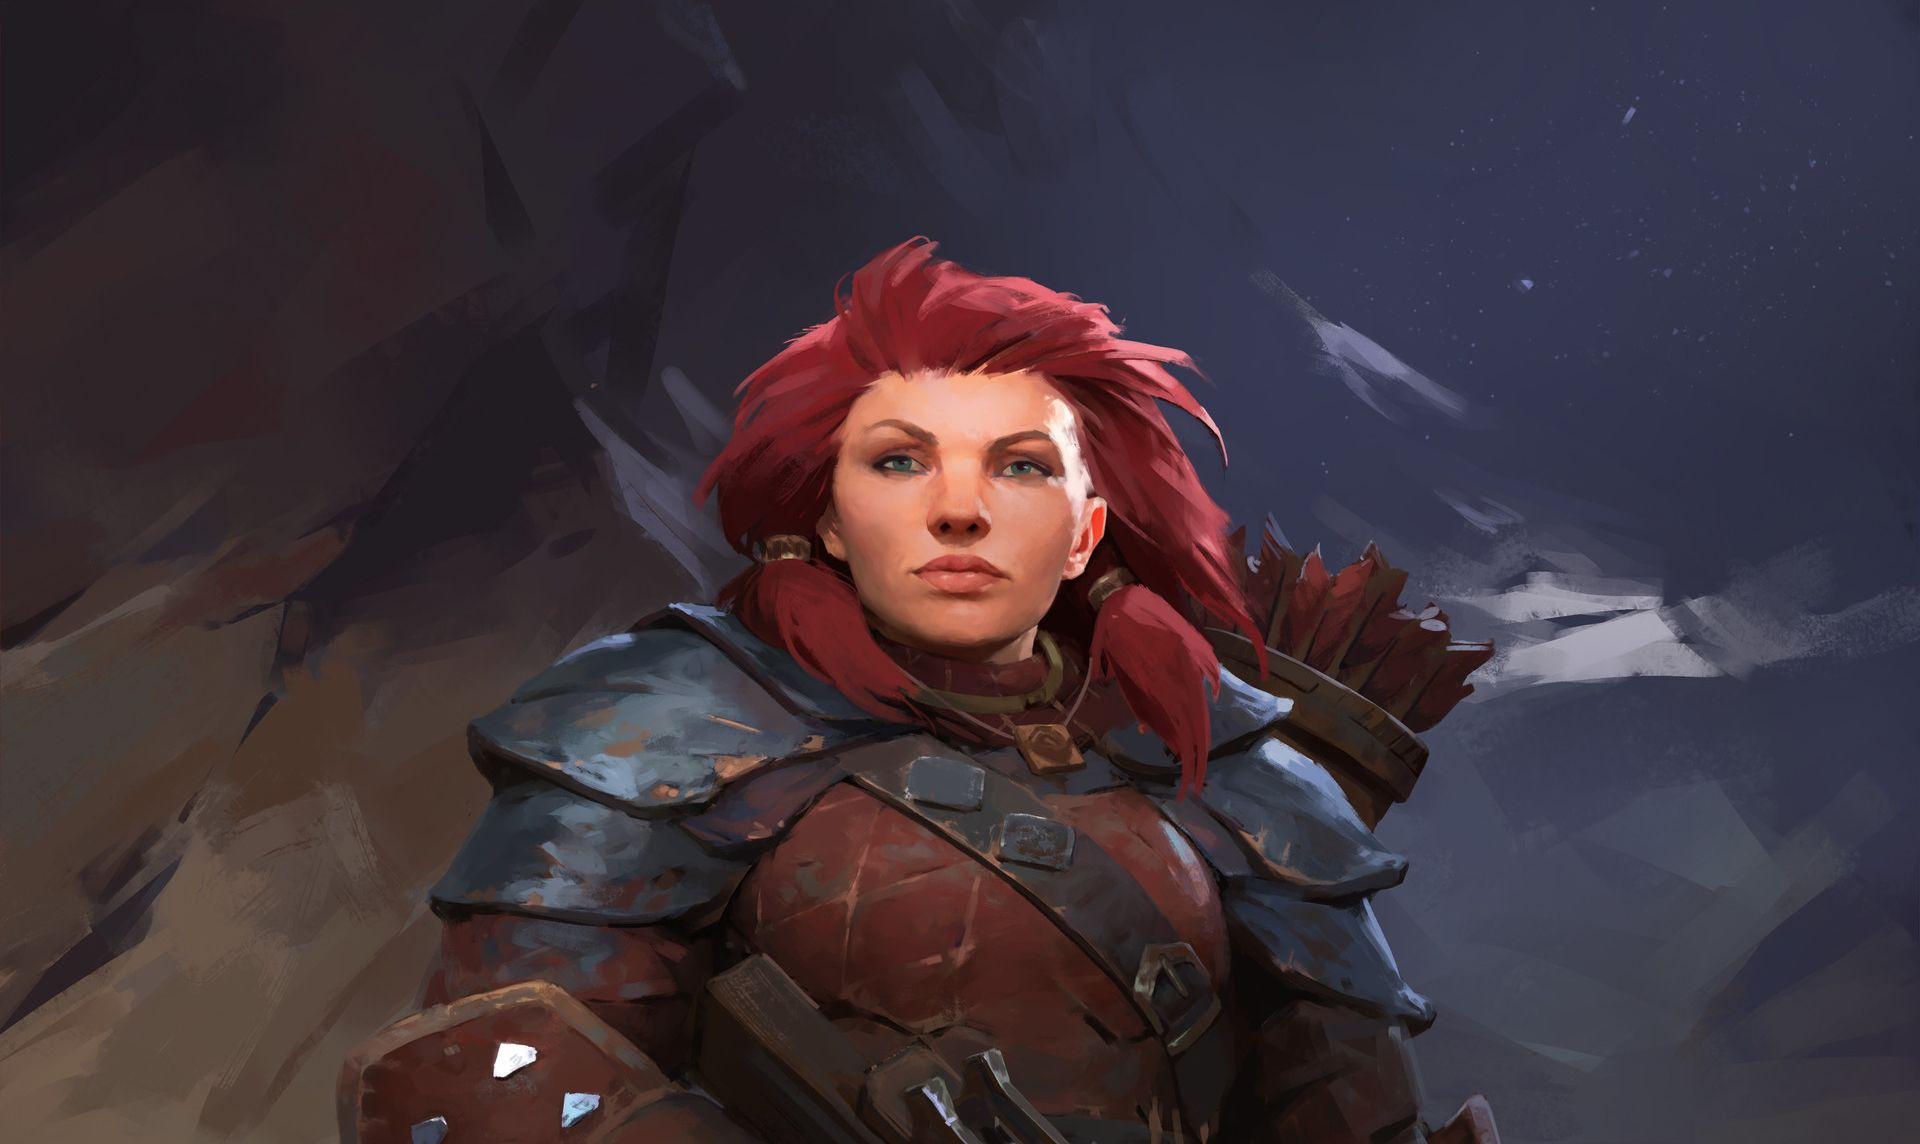 Pathfinder: Kingmaker has some nice portraits, I just wish